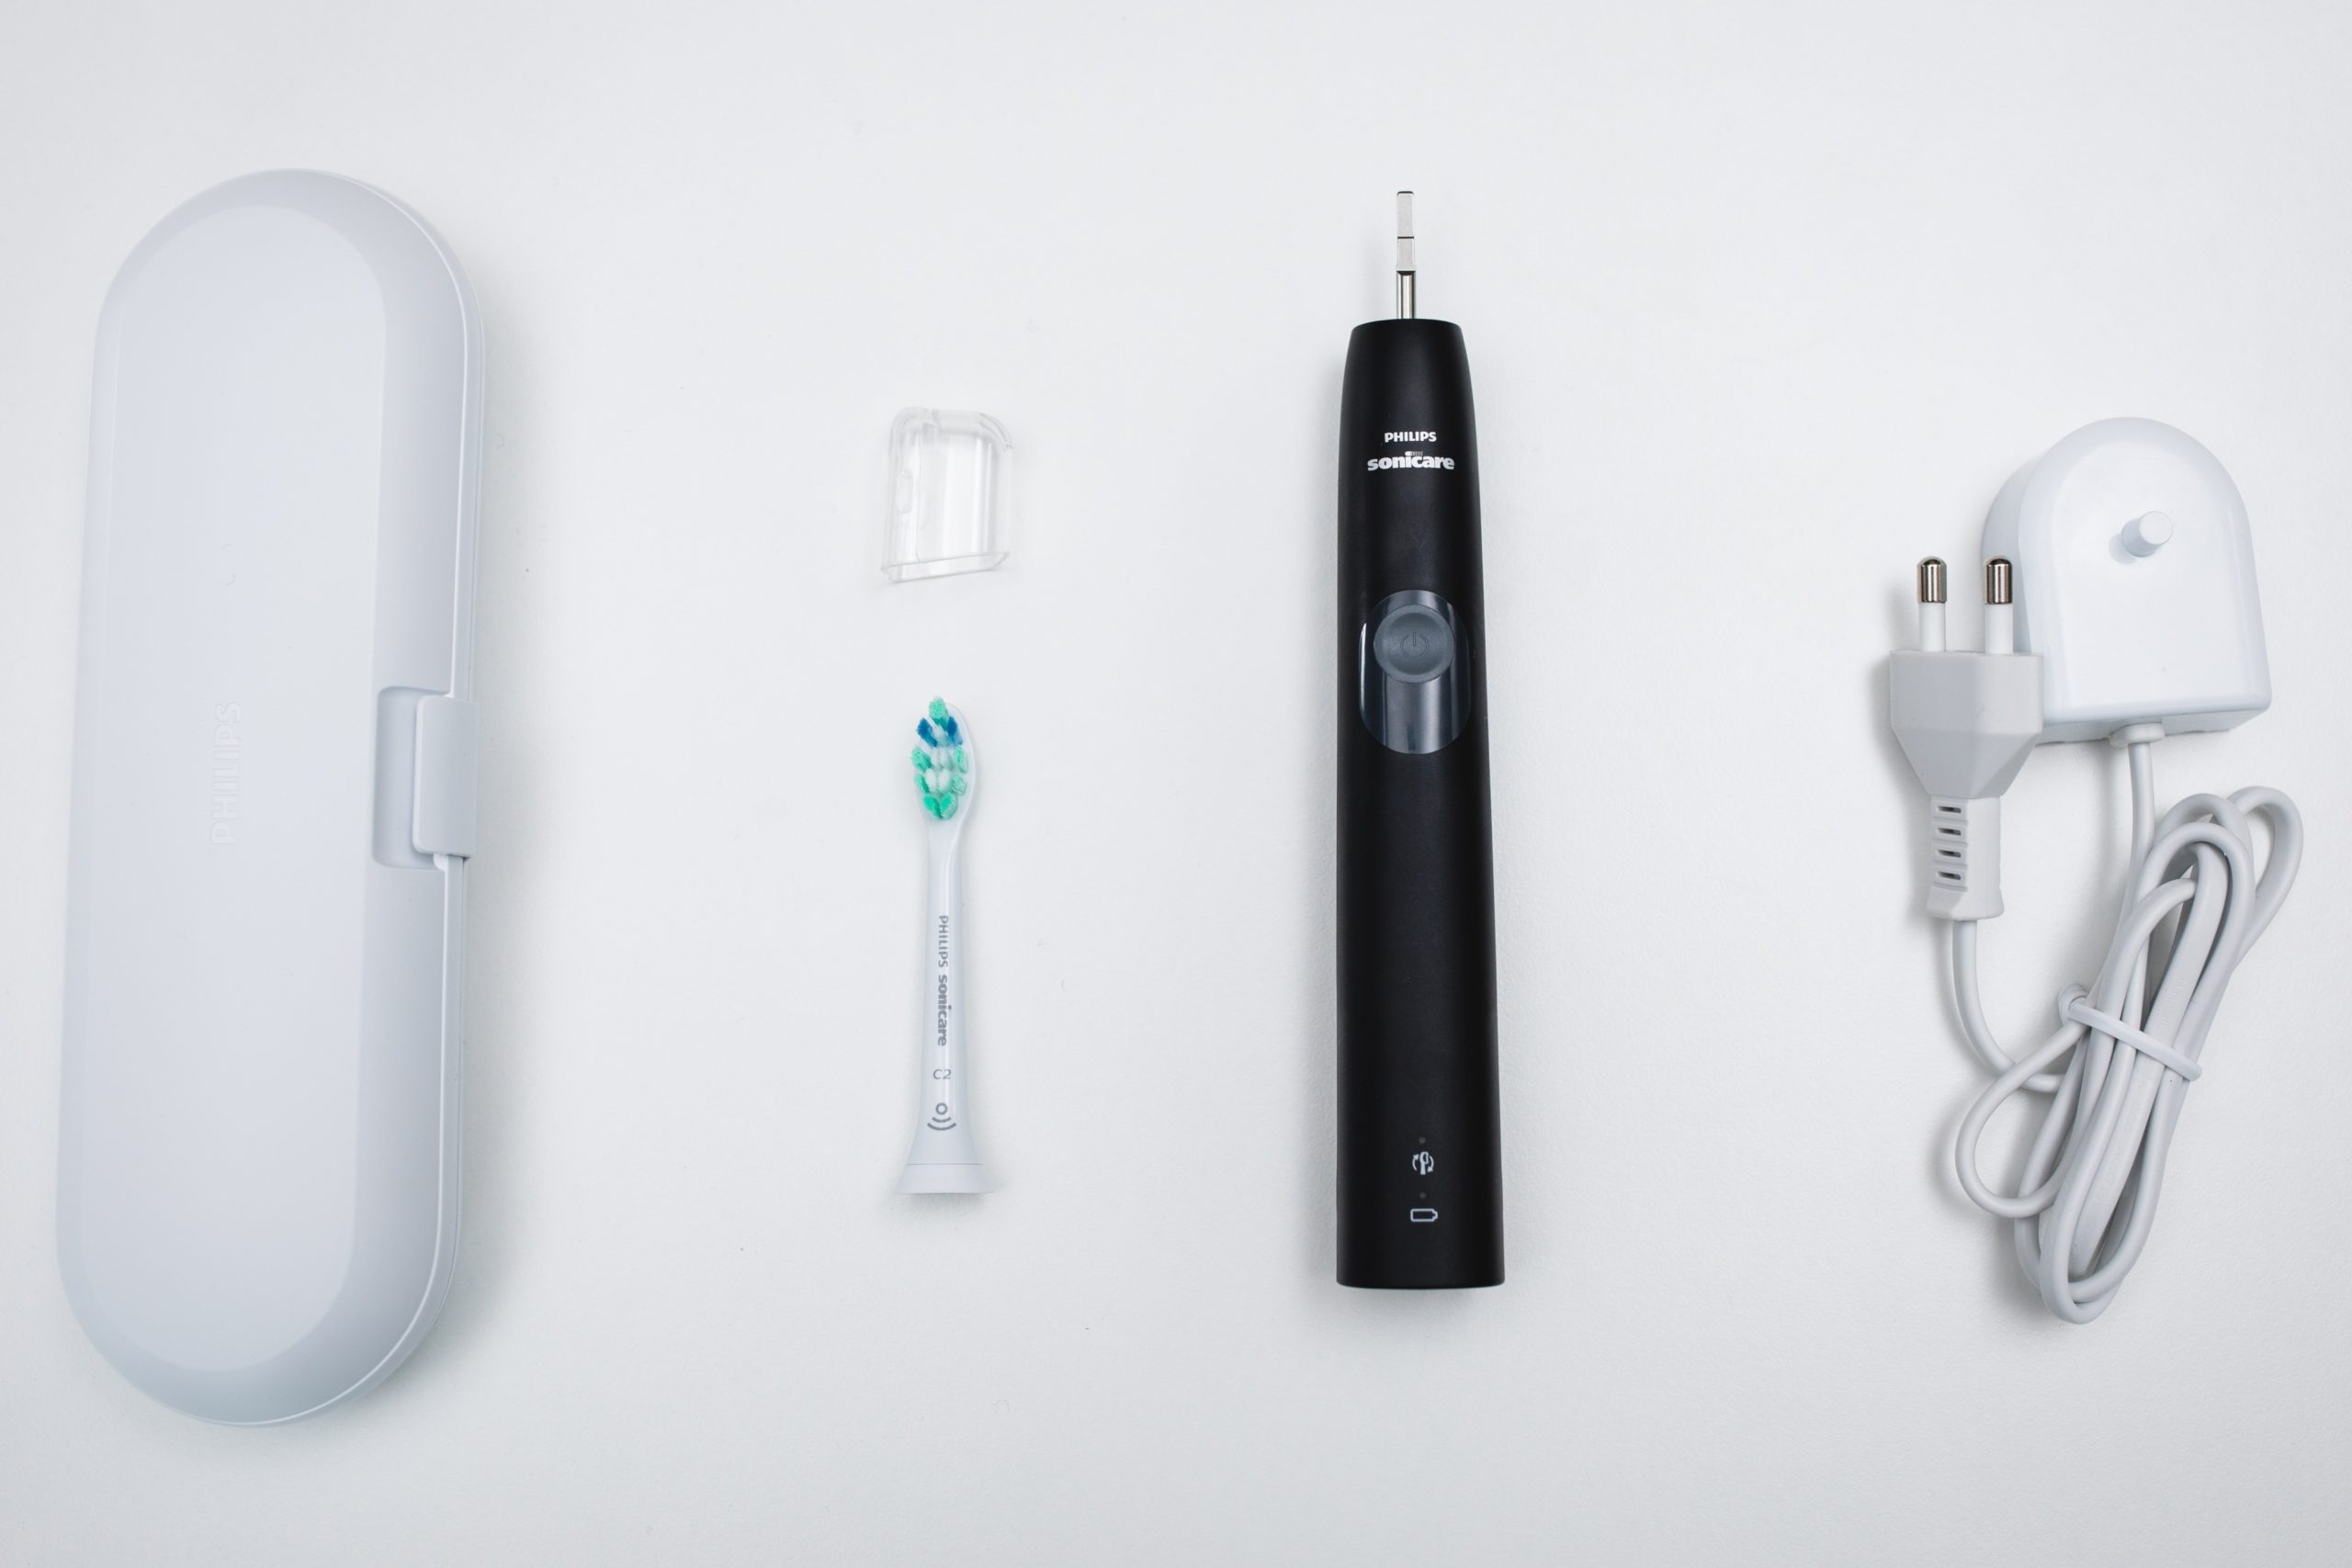 Eltandborste Philips Sonicare ProtectiveClean4300 unboxed